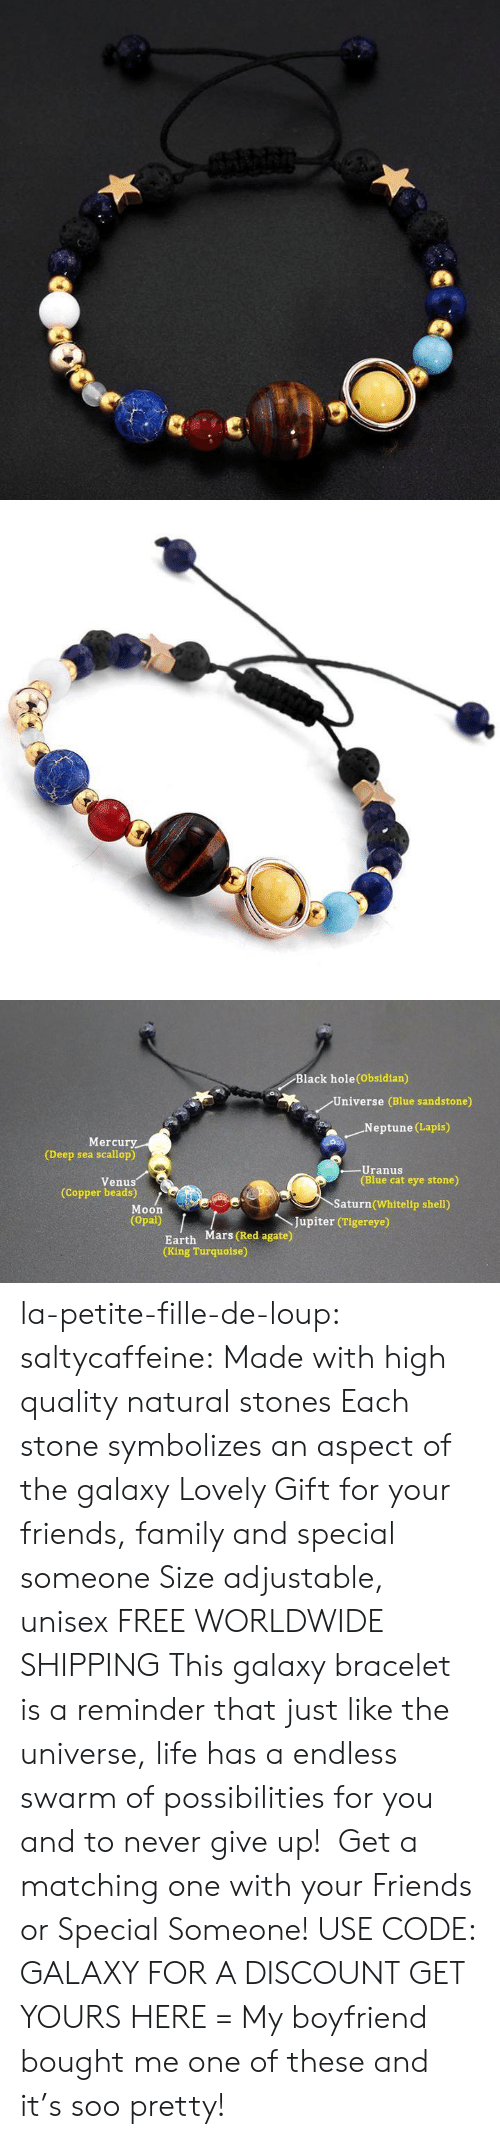 Neptune: Black hole(Obsidian)  Universe (Blue sandstone)  .Neptune (Lapis)  Mercury  (Deep sea scallop)  -Uranus  (Blue cat eye stone)  Venus  (Copper beads)  Saturn (Whitelip shell)  Moon  (Opal)  Jupiter (Tigereye)  Earth Mars (Red agate)  (King Turquoise) la-petite-fille-de-loup: saltycaffeine:  Made with high quality natural stones Each stone symbolizes an aspect of the galaxy Lovely Gift for your friends, family and special someone Size adjustable, unisex FREE WORLDWIDE SHIPPING This galaxy bracelet is a reminder that just like the universe, life has a endless swarm of possibilities for you and to never give up! Get a matching one with your Friends or Special Someone! USE CODE: GALAXY FOR A DISCOUNT GET YOURS HERE =  My boyfriend bought me one of these and it's soo pretty!